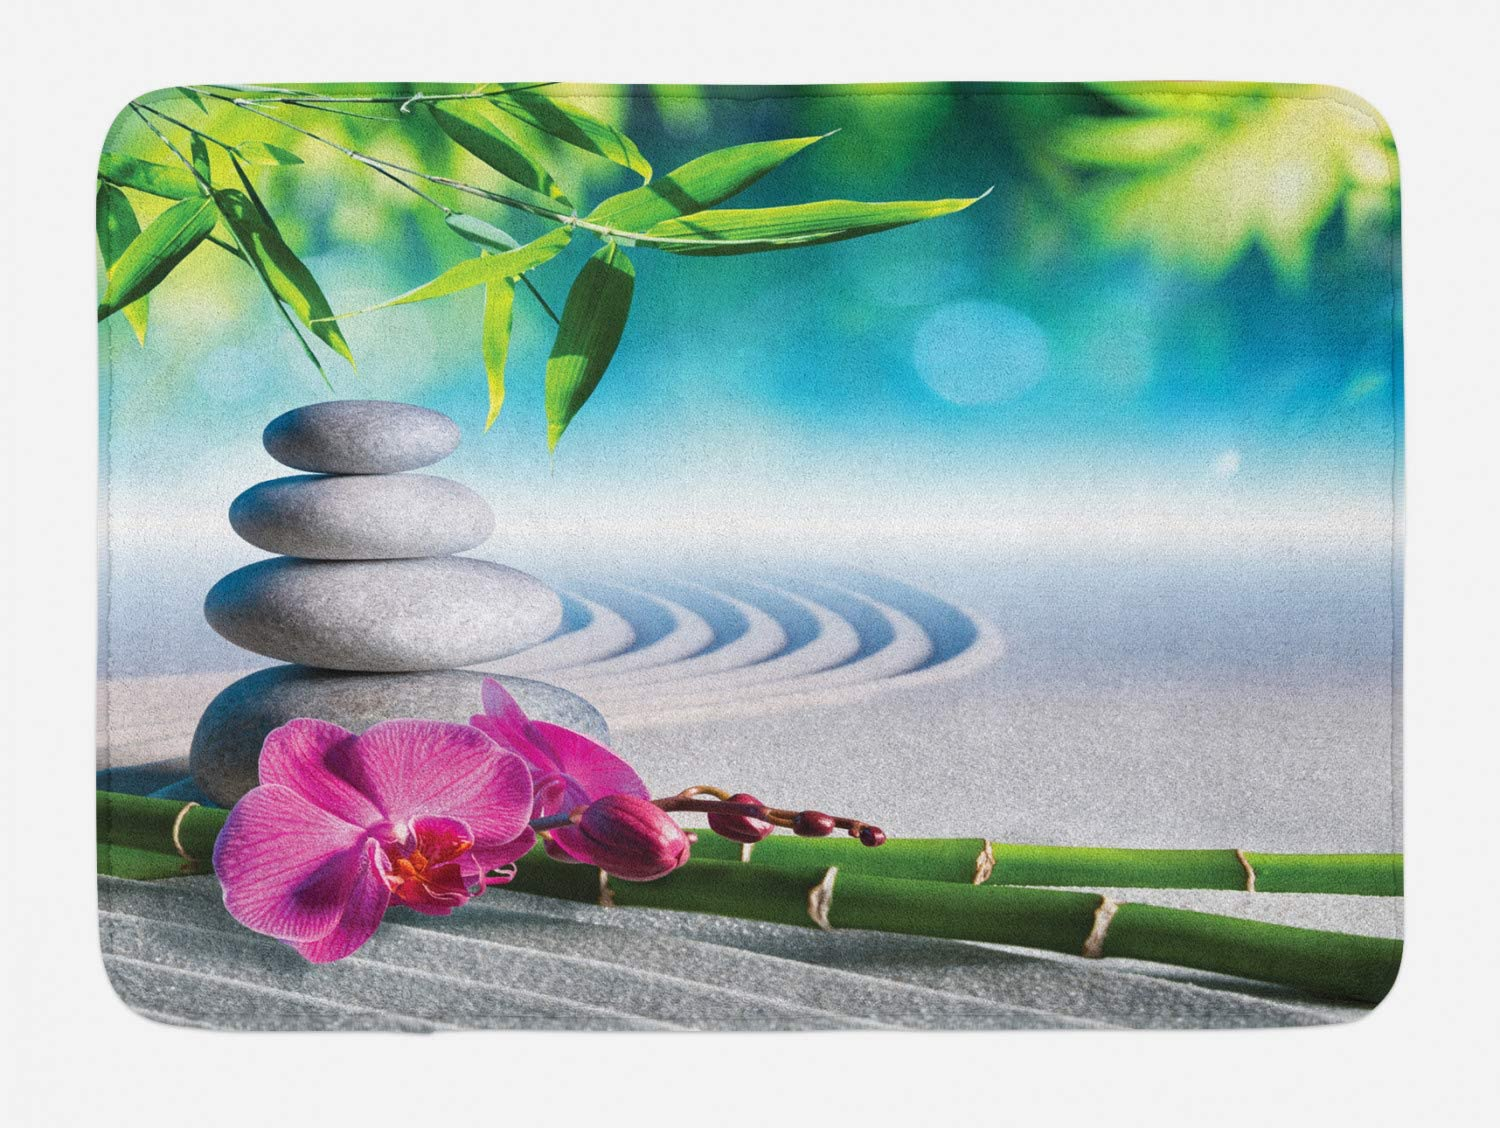 """Ambesonne Spa Bath Mat, Sand Orchid and Massage Stones in Garden Sunny Day Meditation Yoga, Plush Bathroom Decor Mat with Non Slip Backing, 29.5"""" X 17.5"""", Blue Gray"""